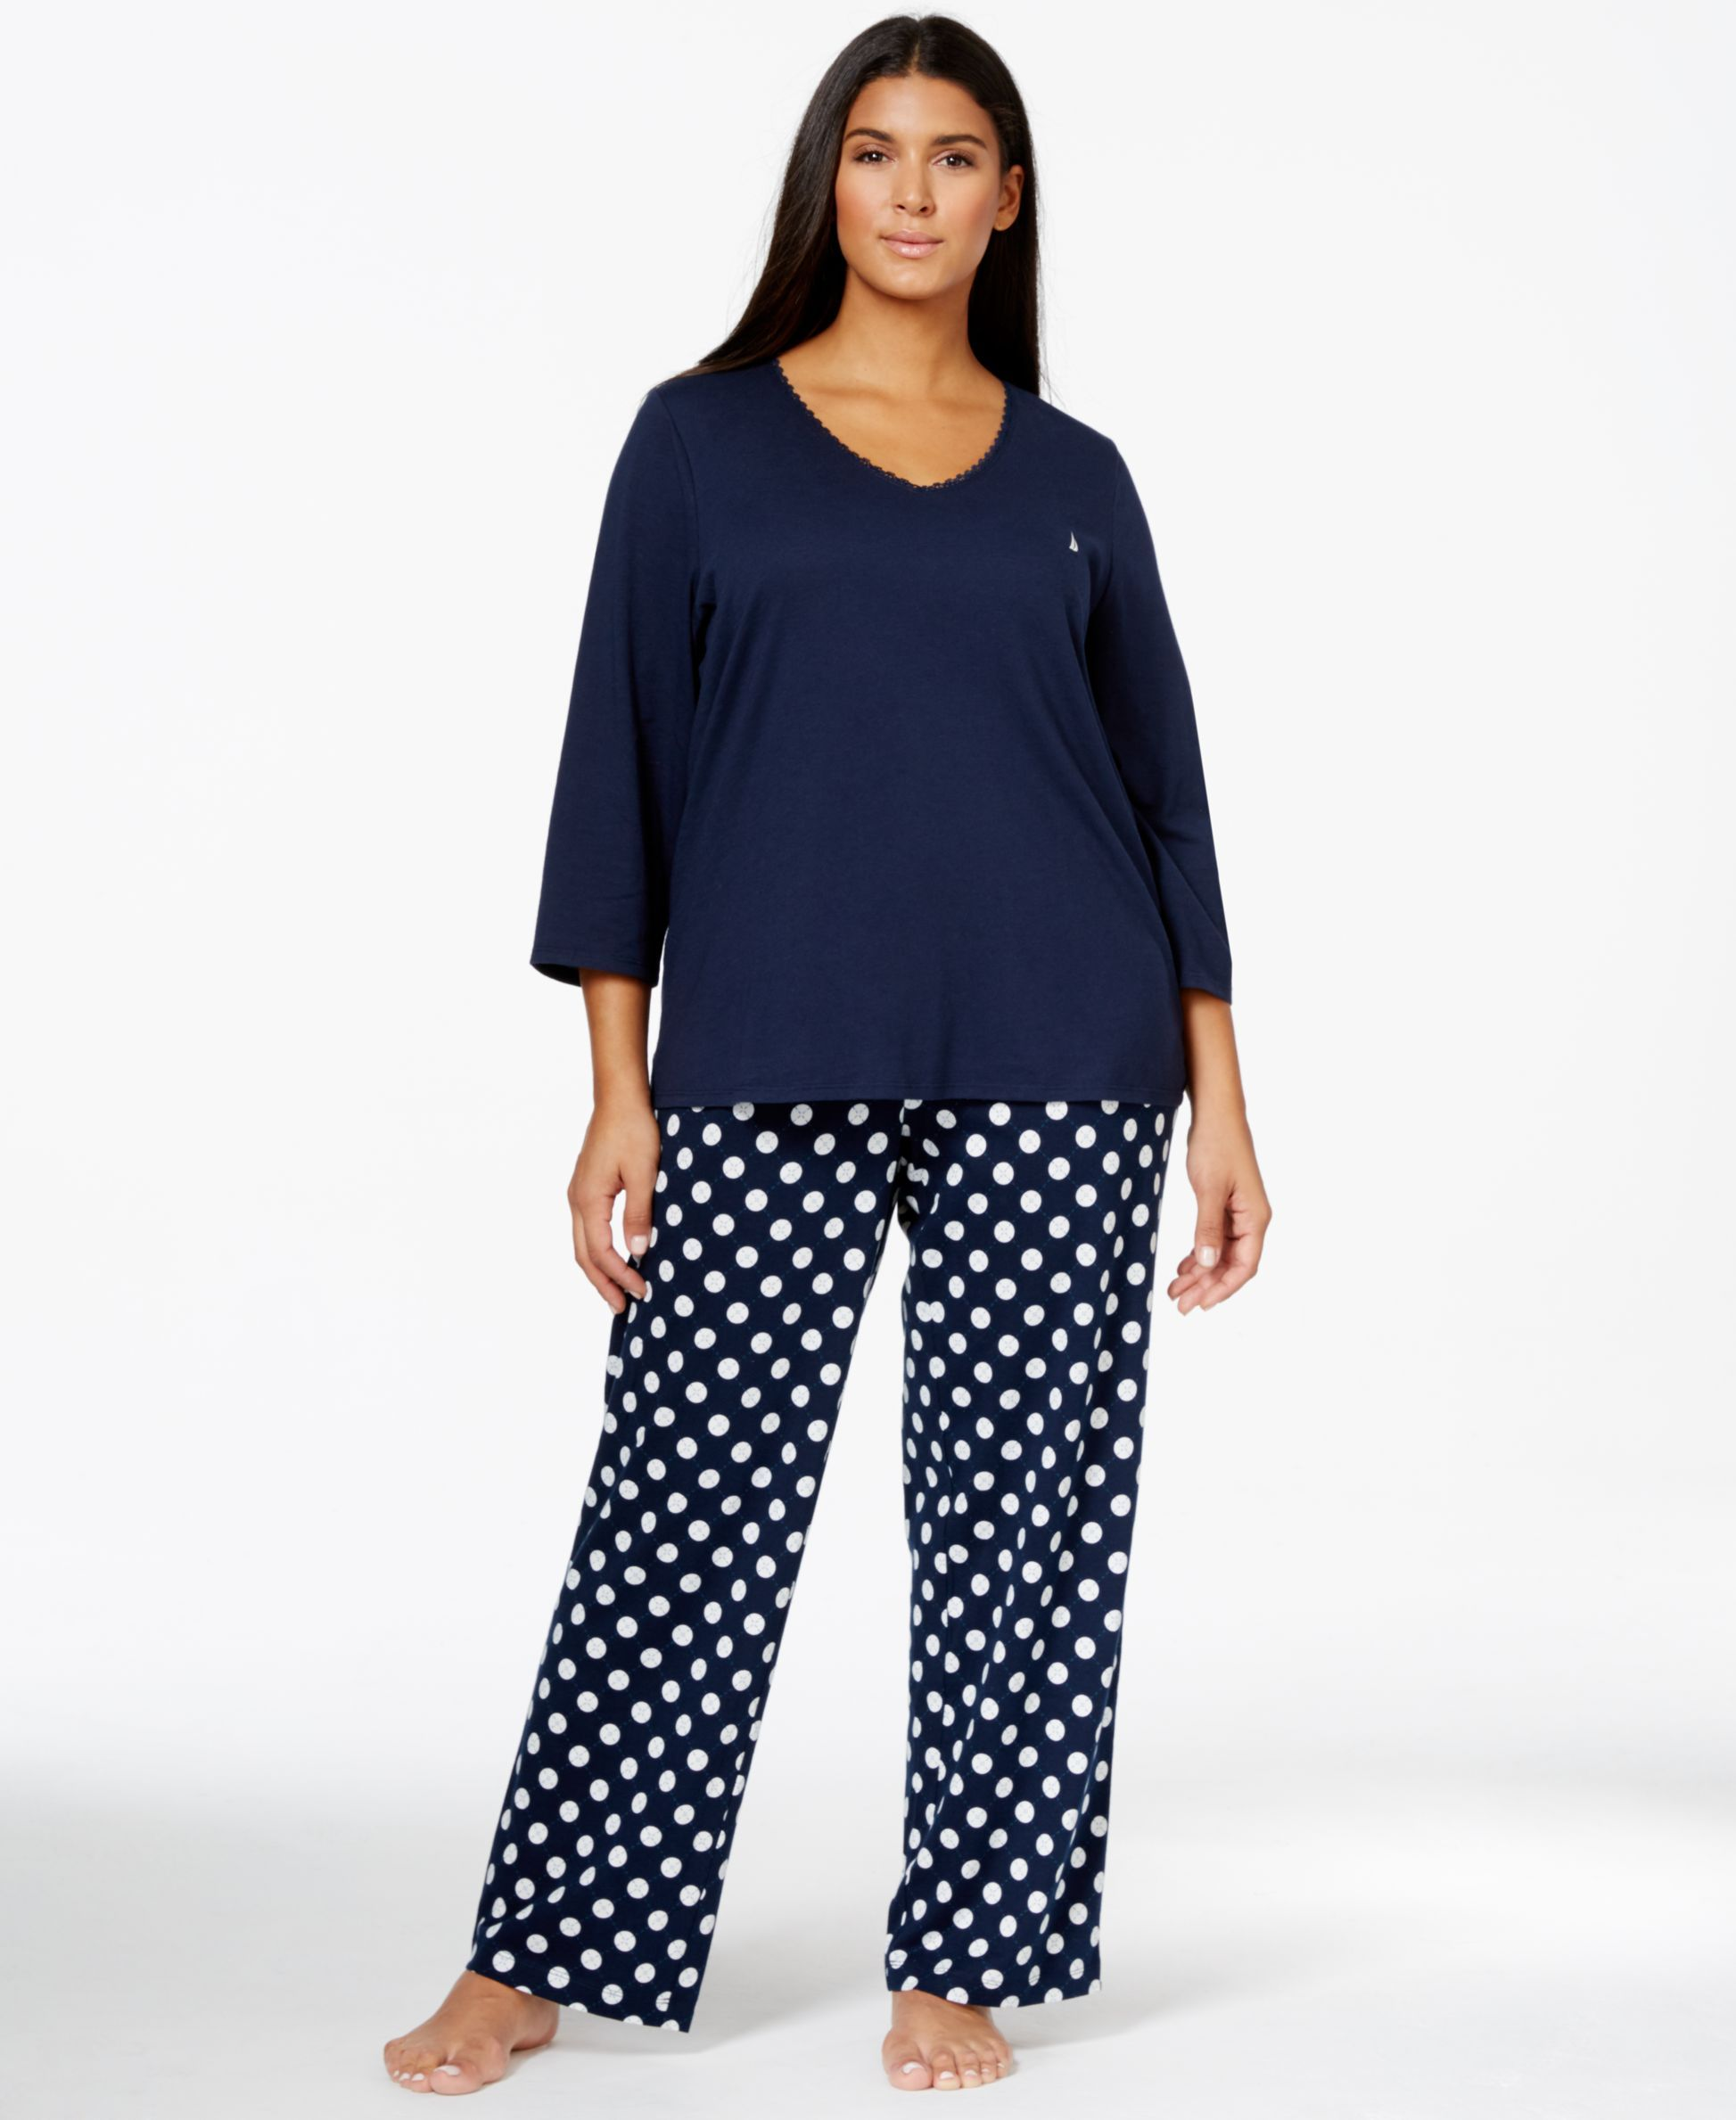 16e921a9570a Nautica Plus Size Solid Top and Printed Pajama Pants Set